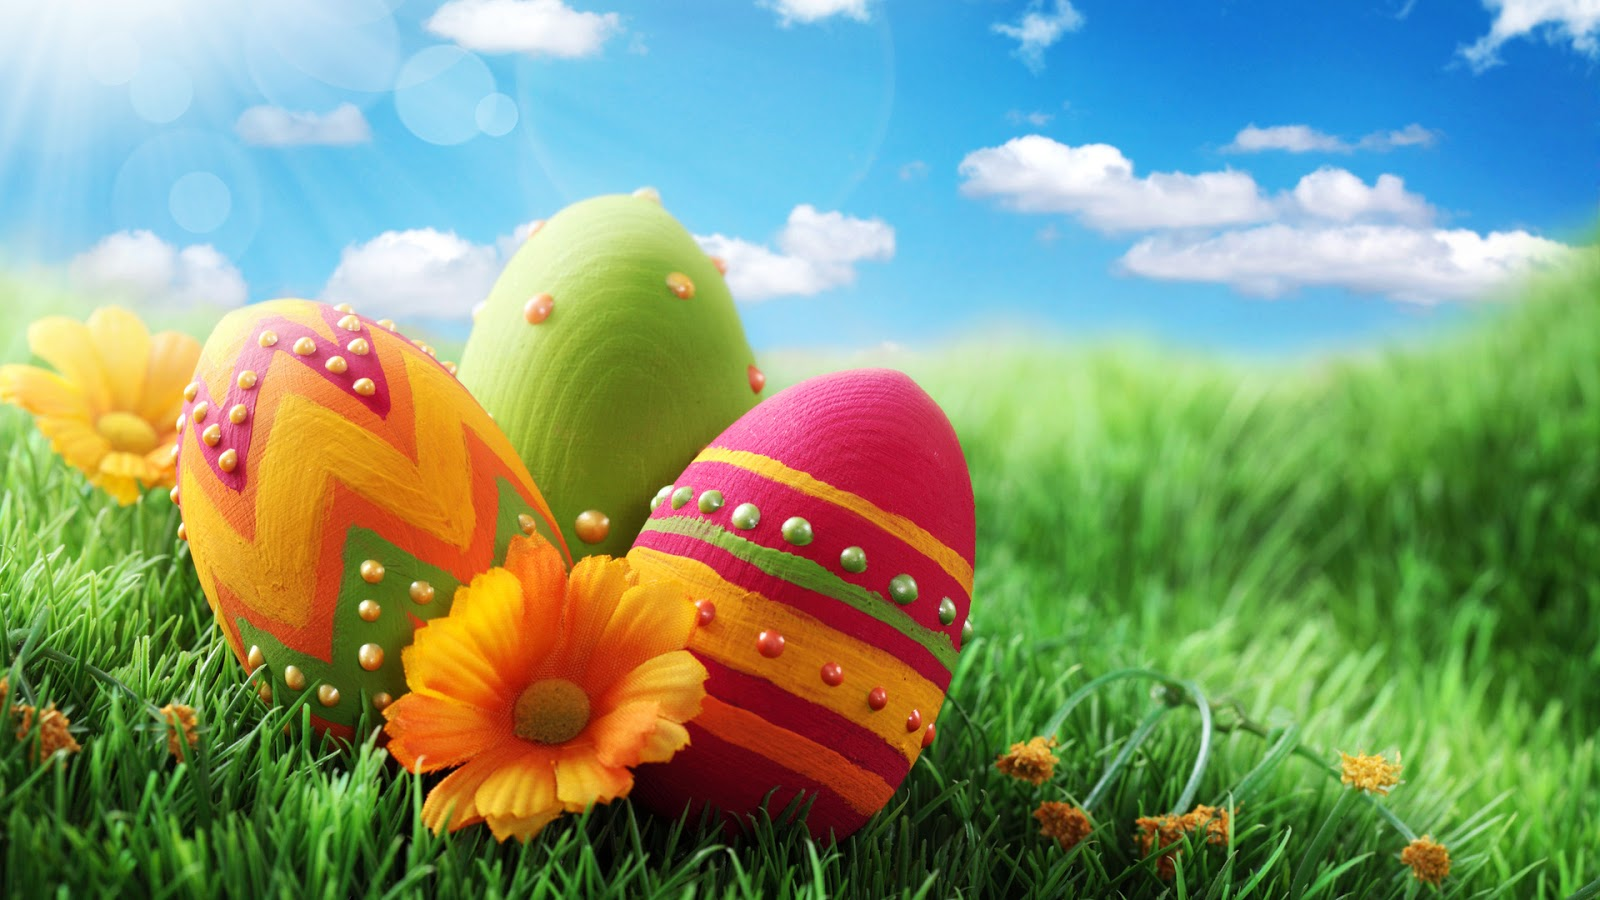 Funny Easter Bunny Eggs images pics Wallpapers (2)